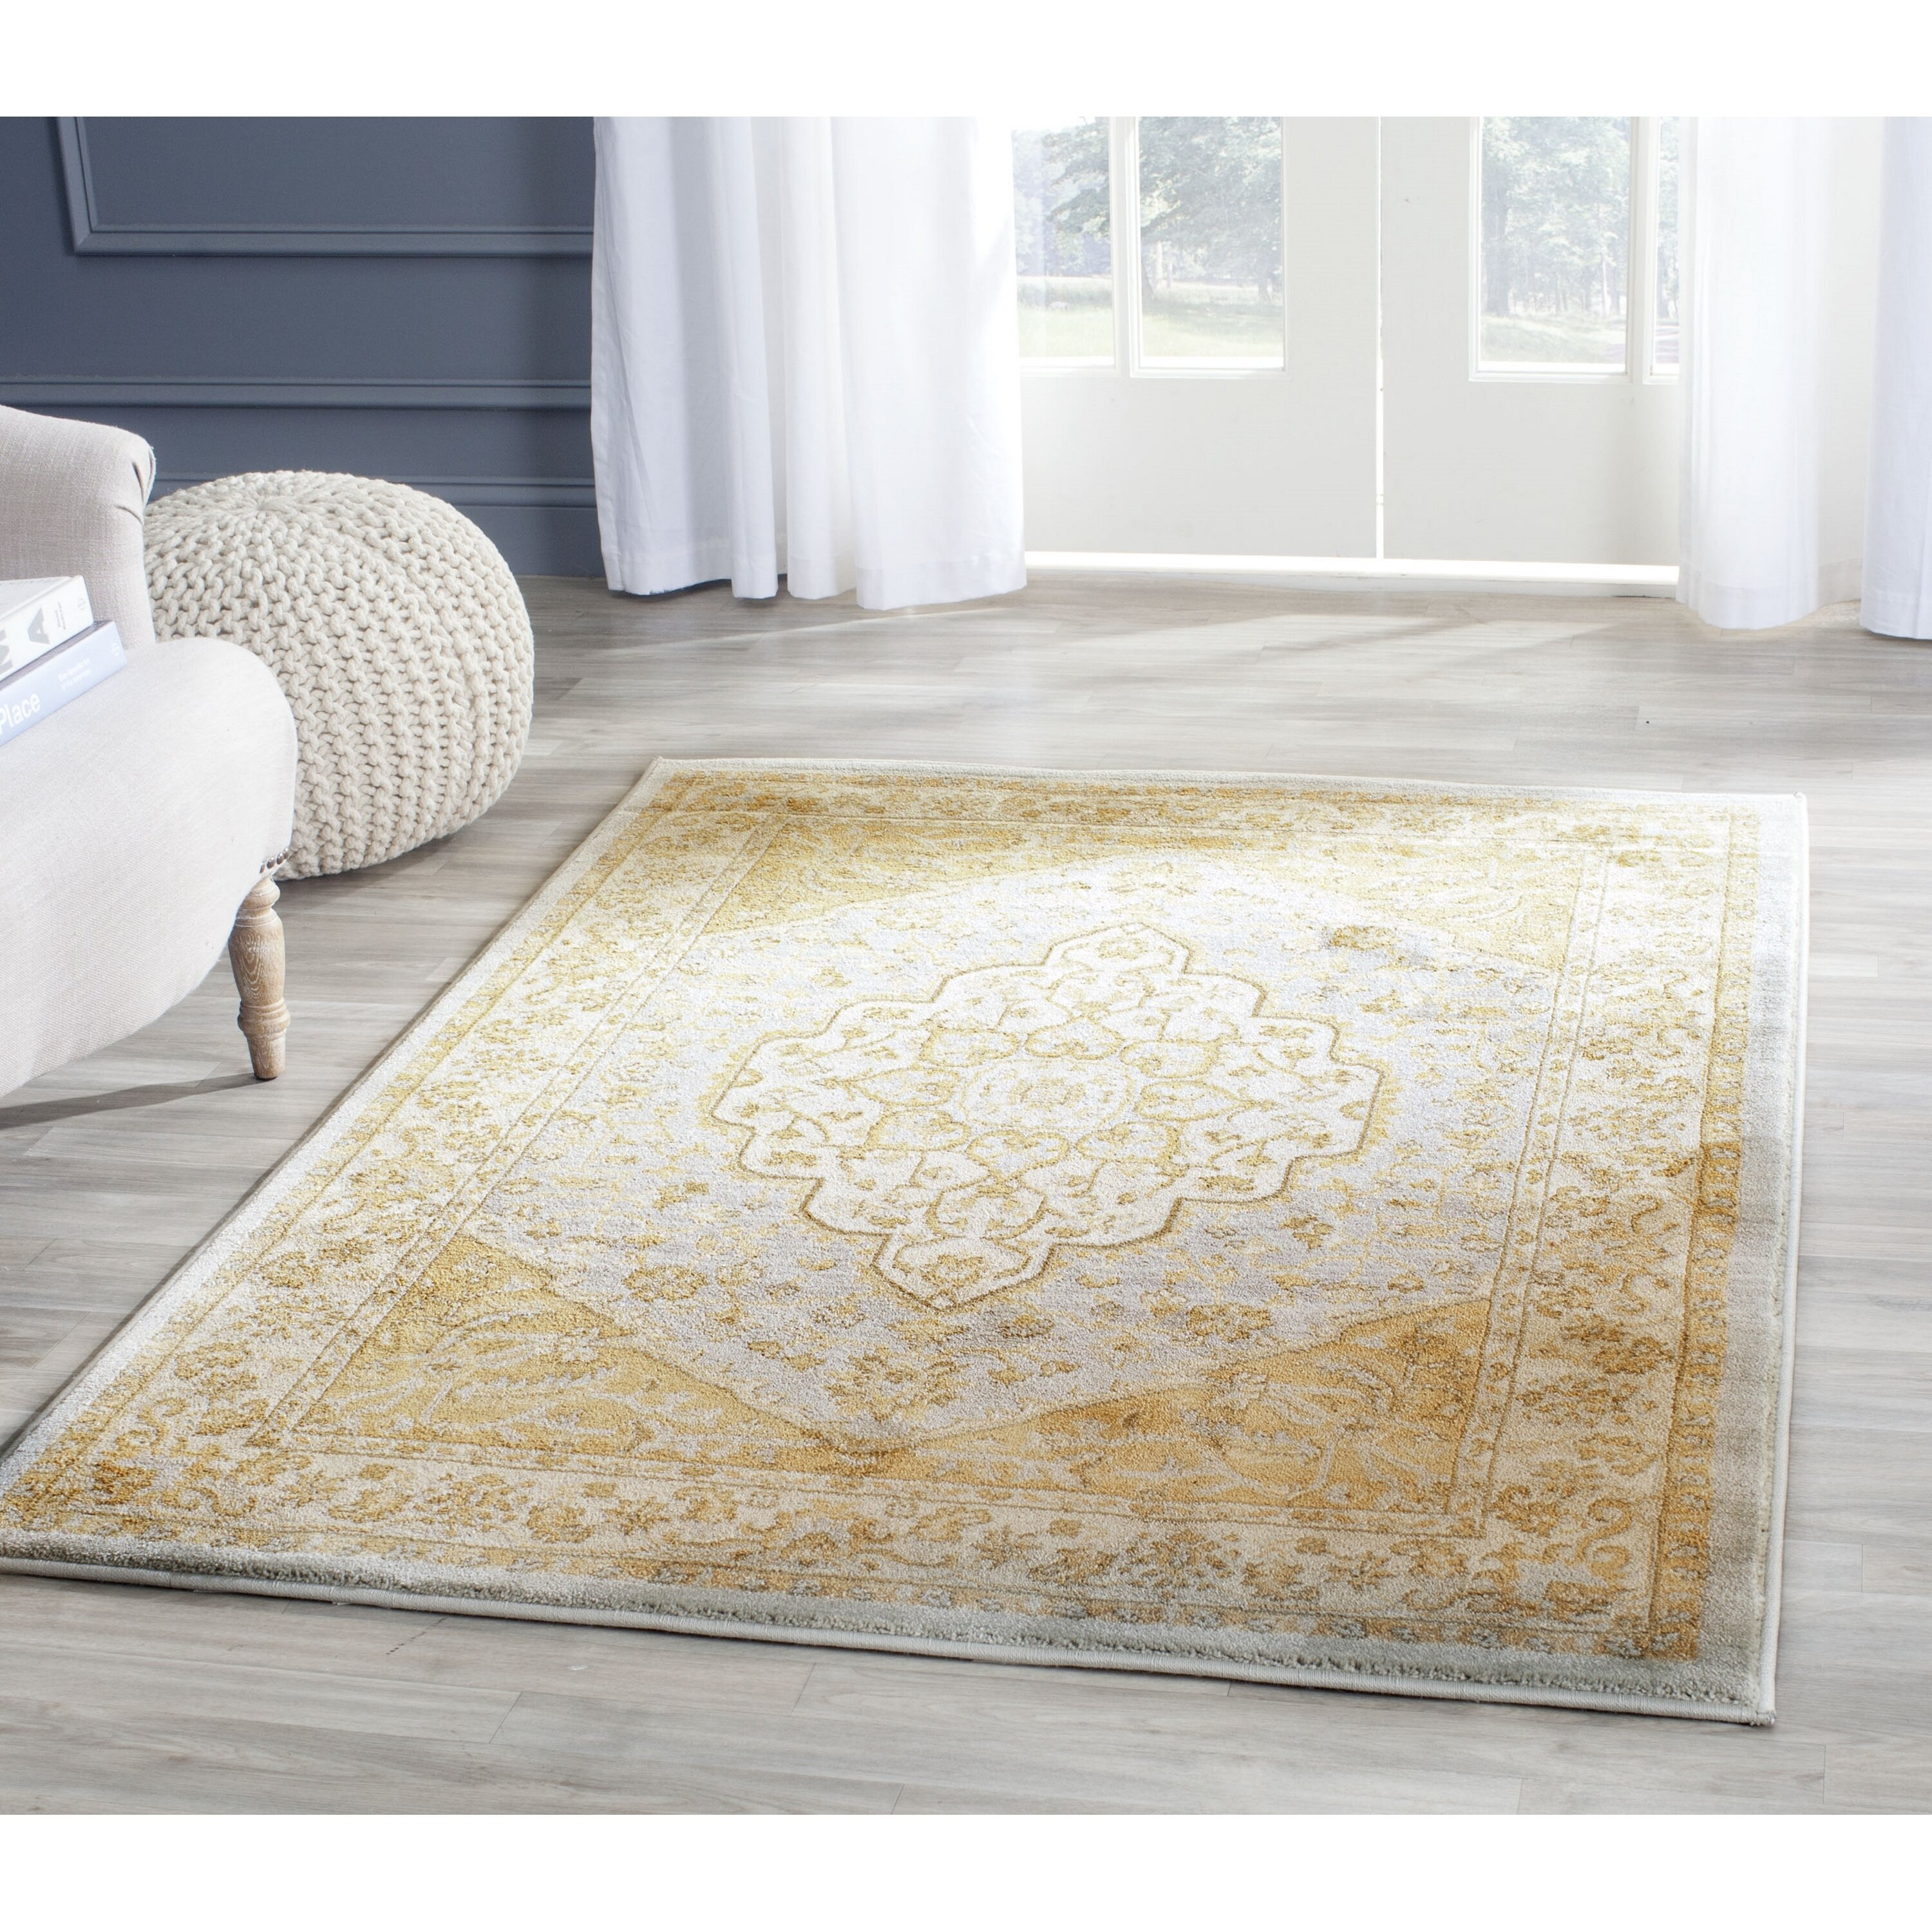 Large Area Rugs Gold: Safavieh Austin Light Grey/Gold Area Rug & Reviews